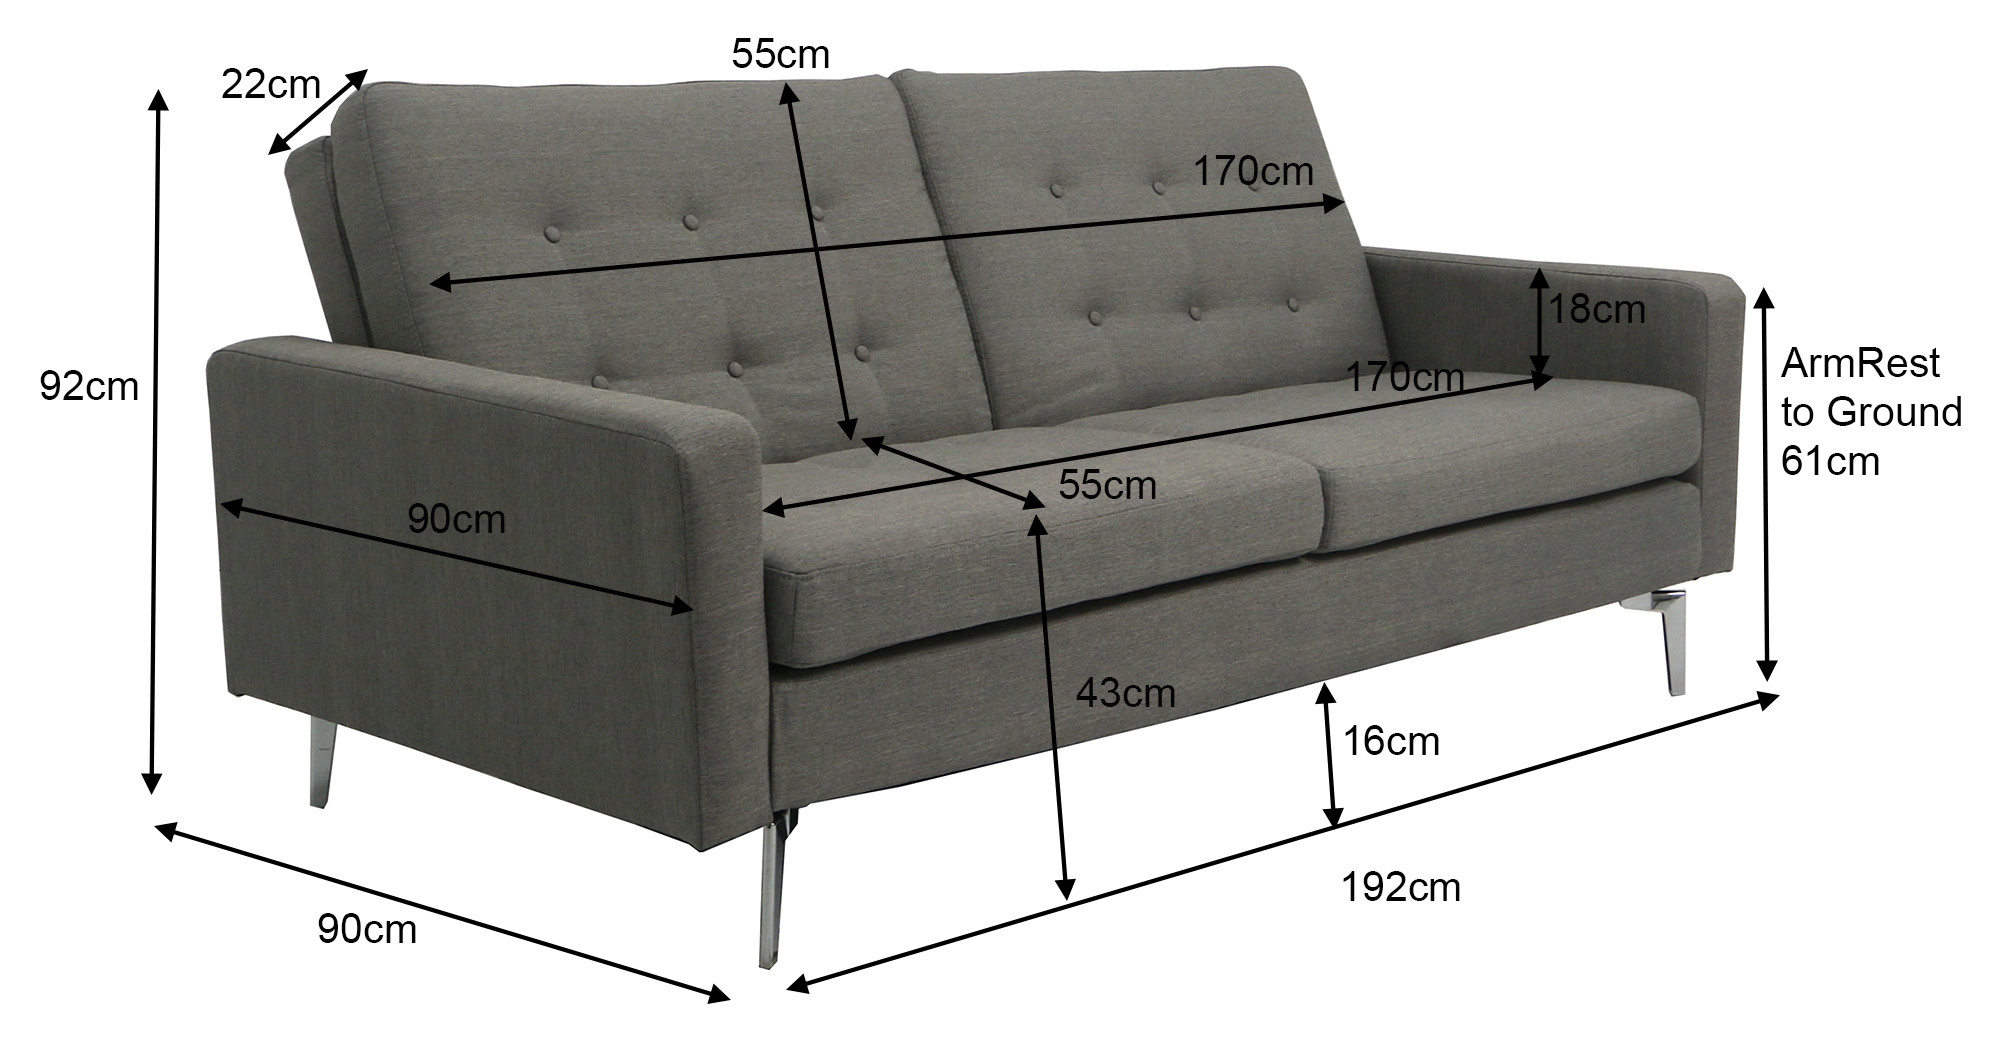 3 seater sofa dimensions which ikea 3 seater sofa is this Standard loveseat dimensions